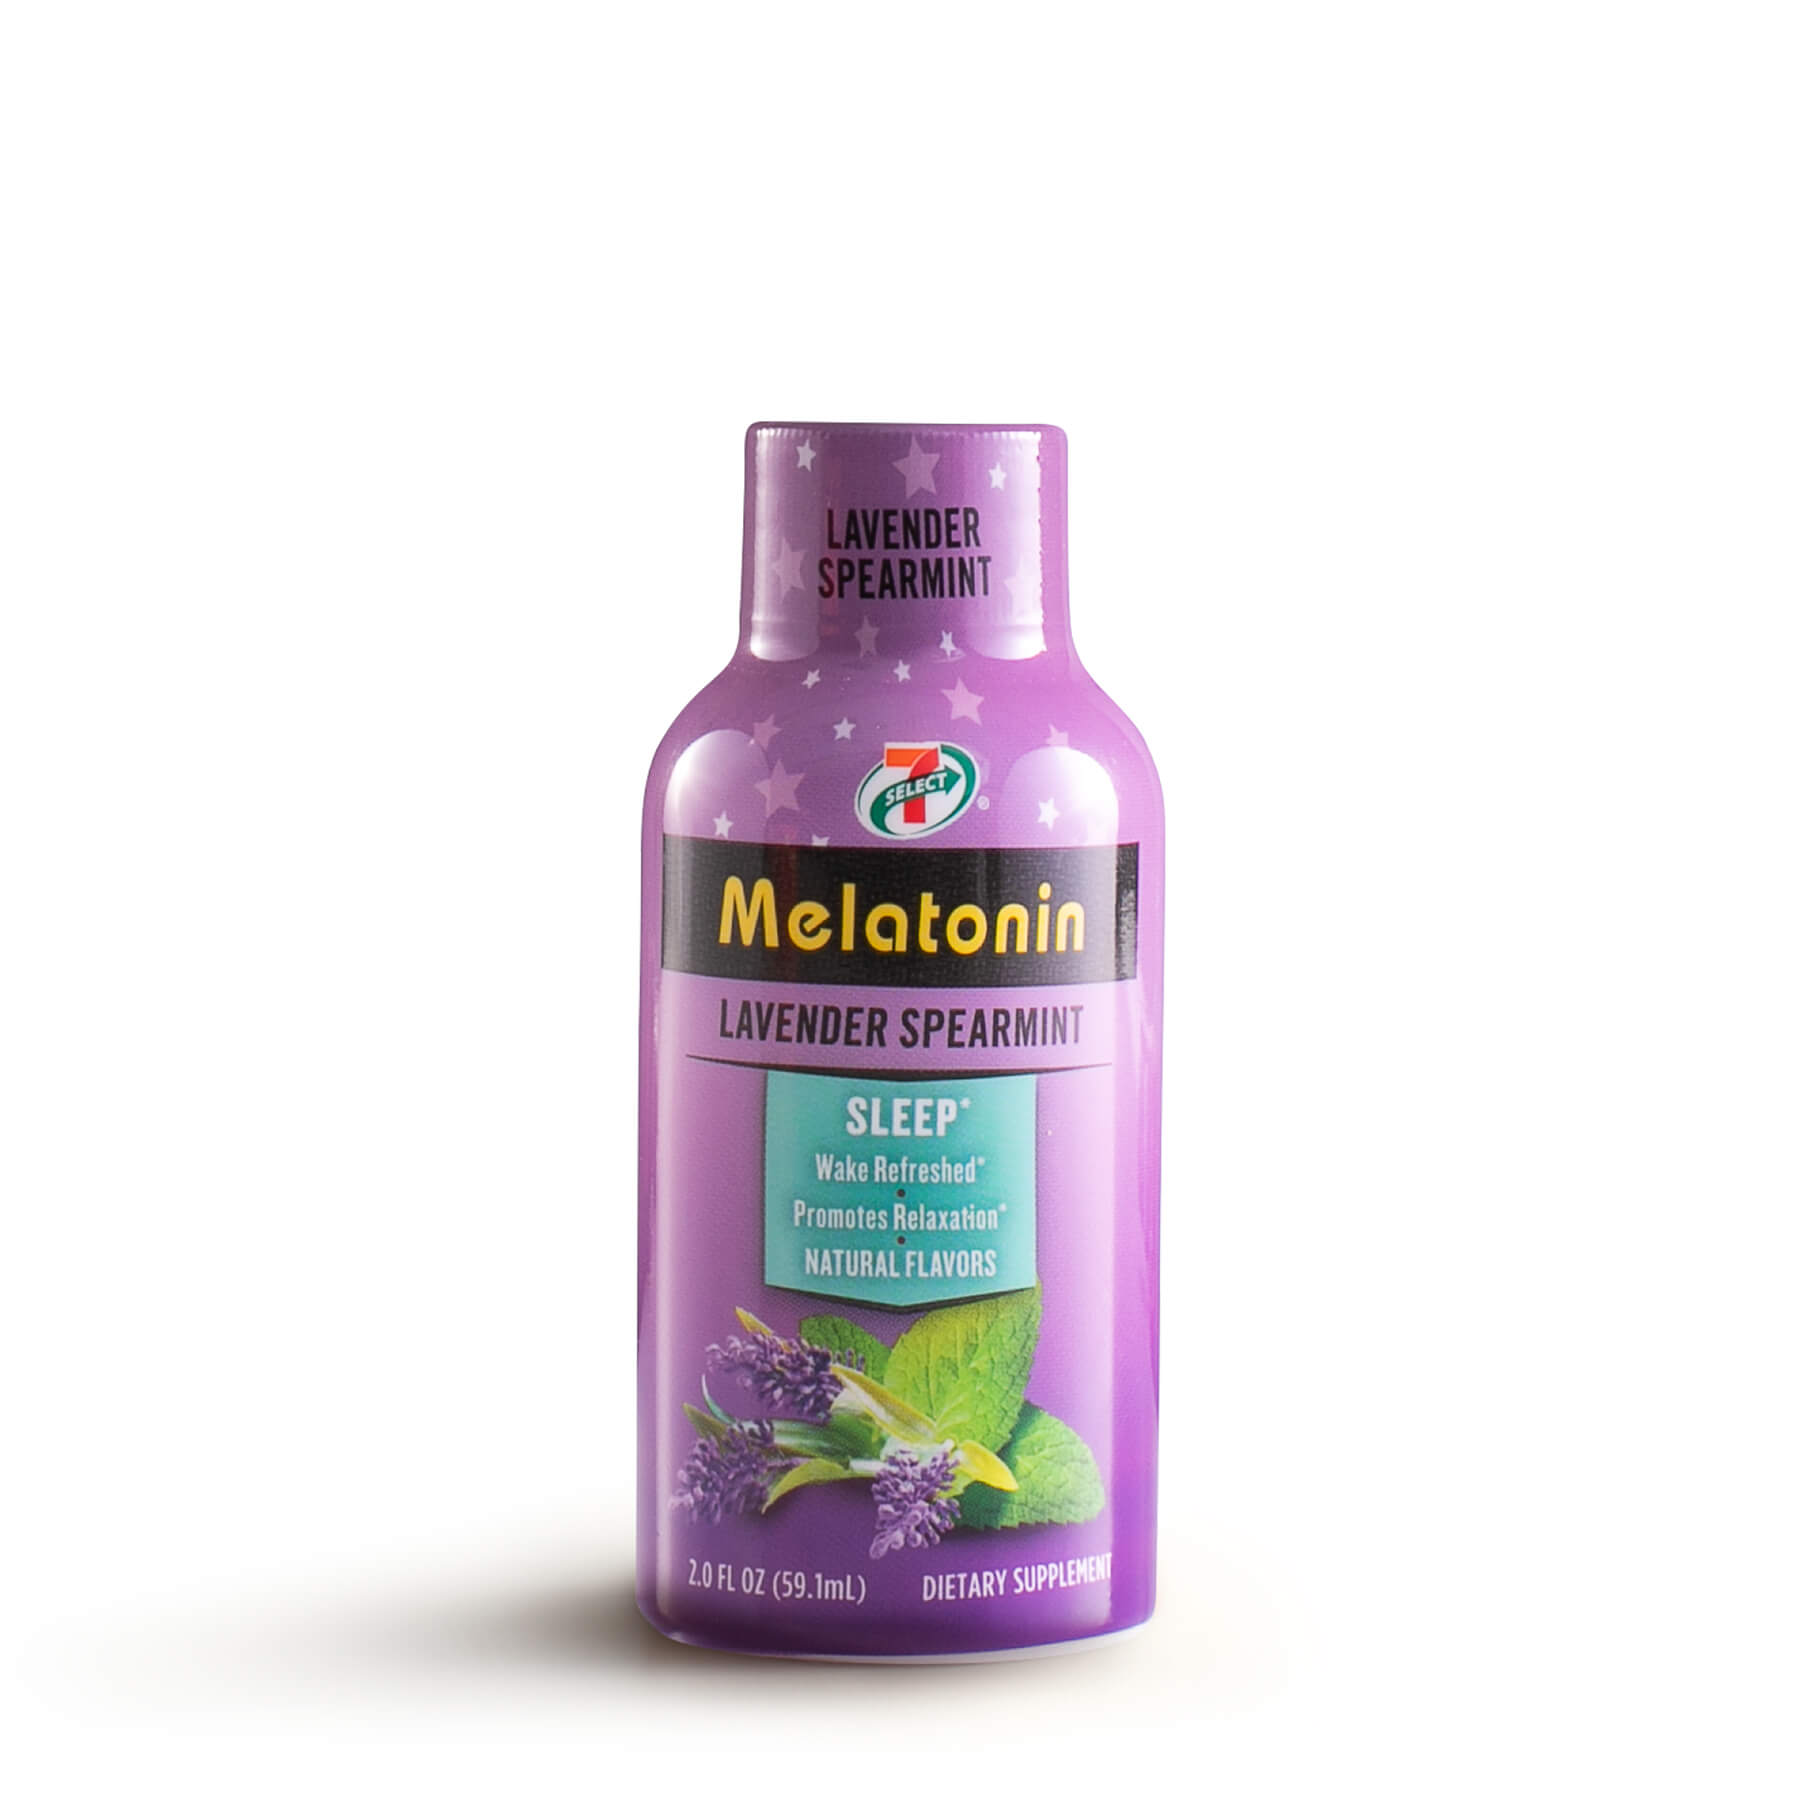 A single 7-Select Melatonin shot in lavender spearmint flavor.